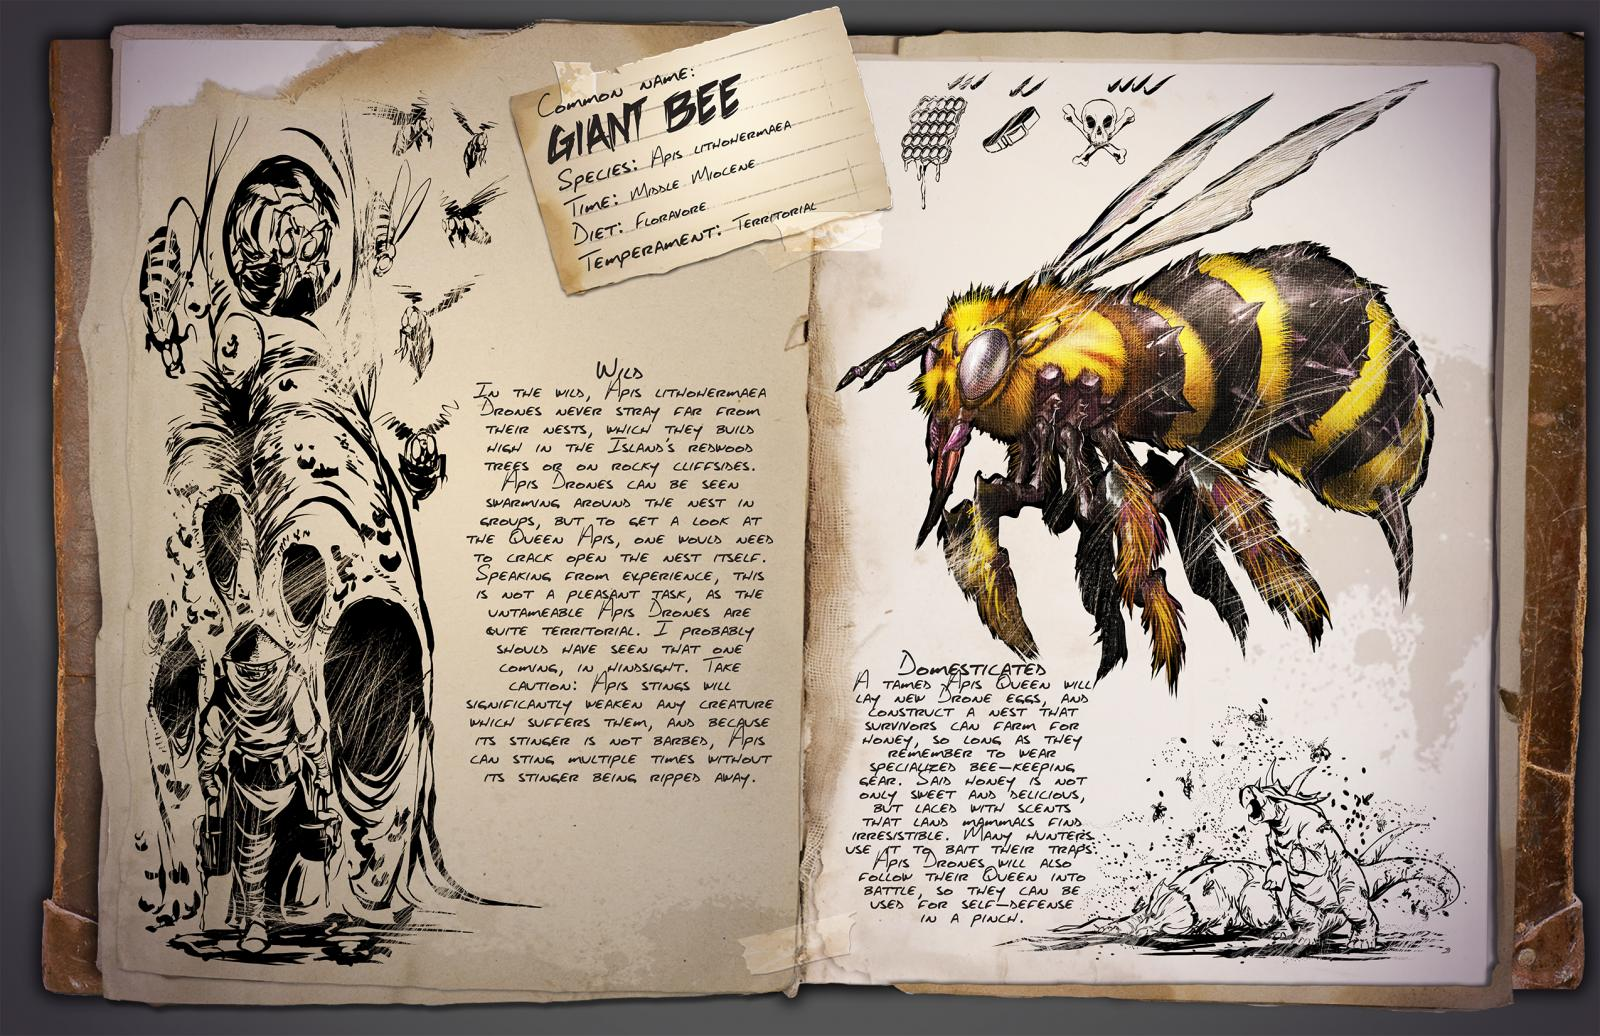 Dino Dossier: Giant Bee